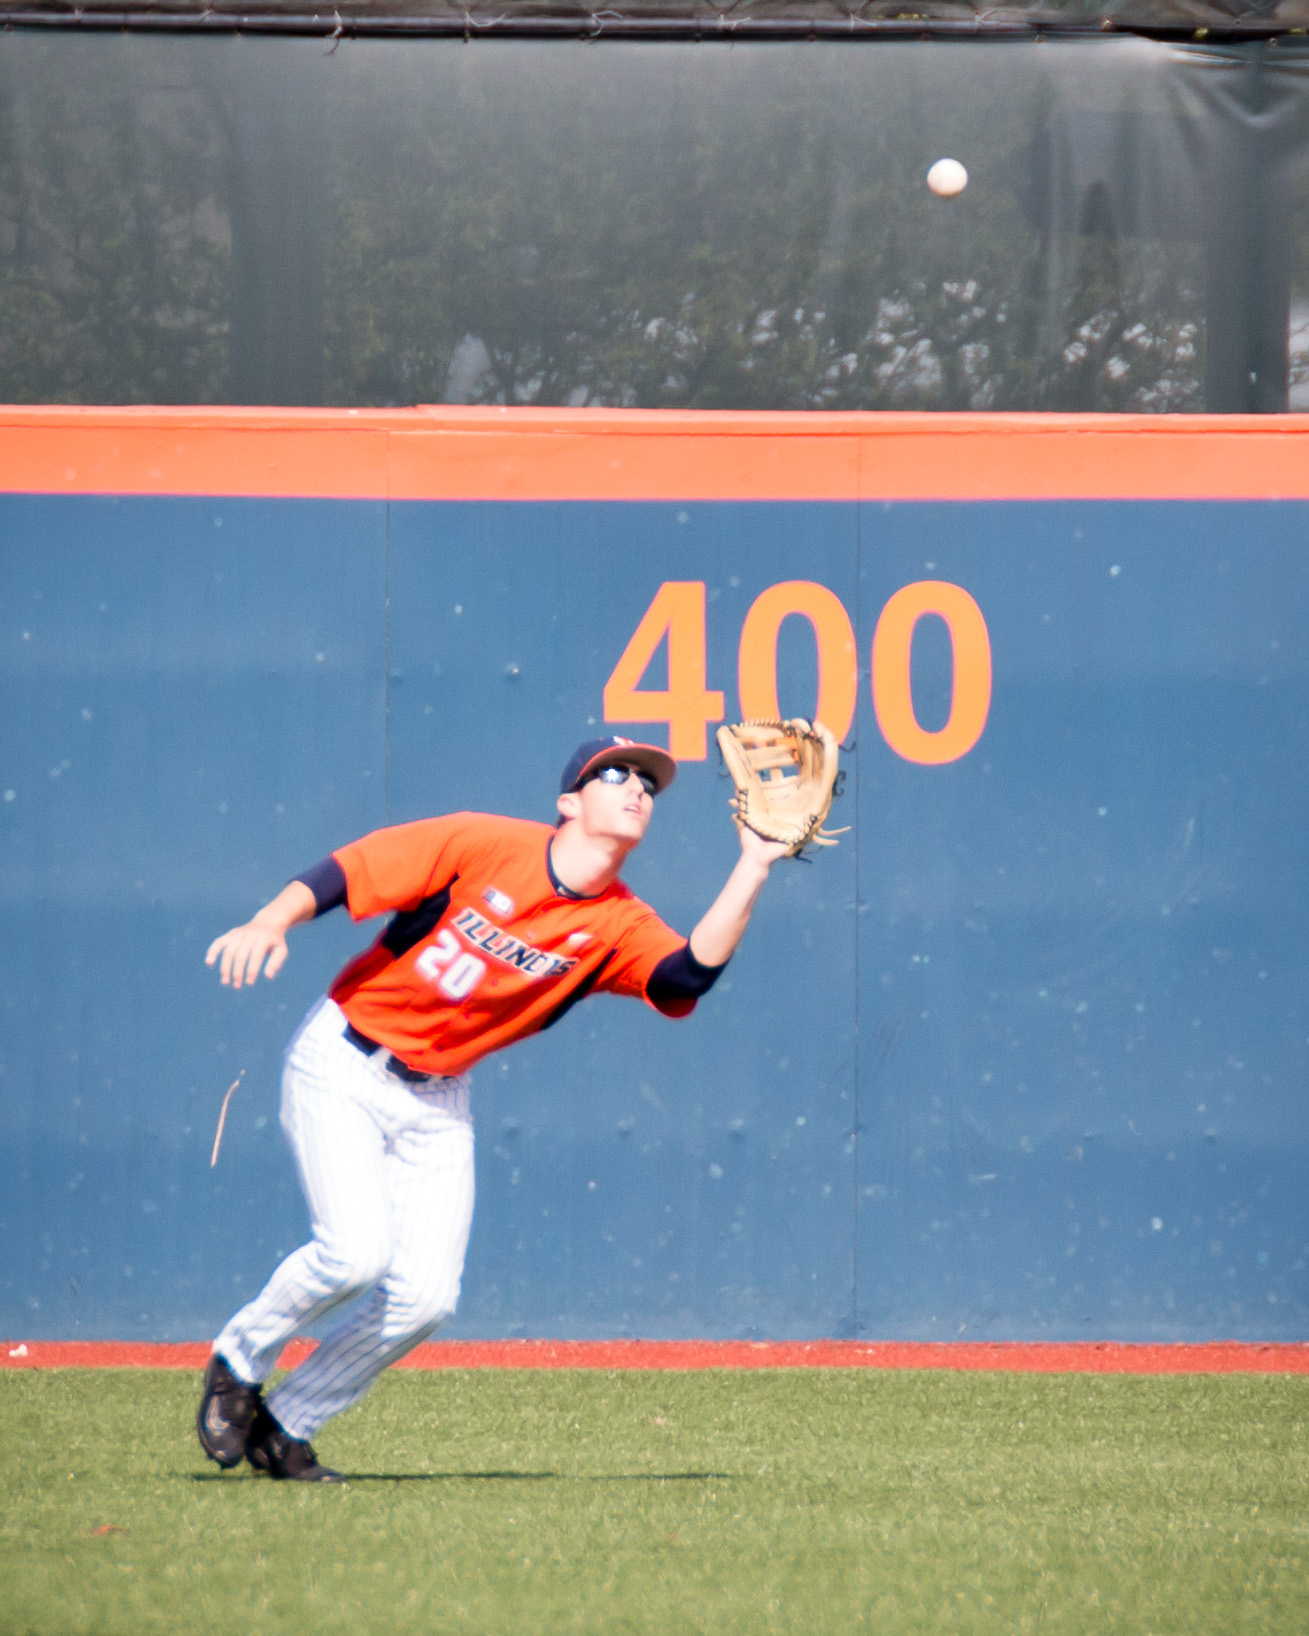 Illinois center fielder Doran Turchin camps under a flyball against Indiana State on Saturday. This sweep of the Sycamores marks the Illini's third-straight win and first sweep of the 2017 season.